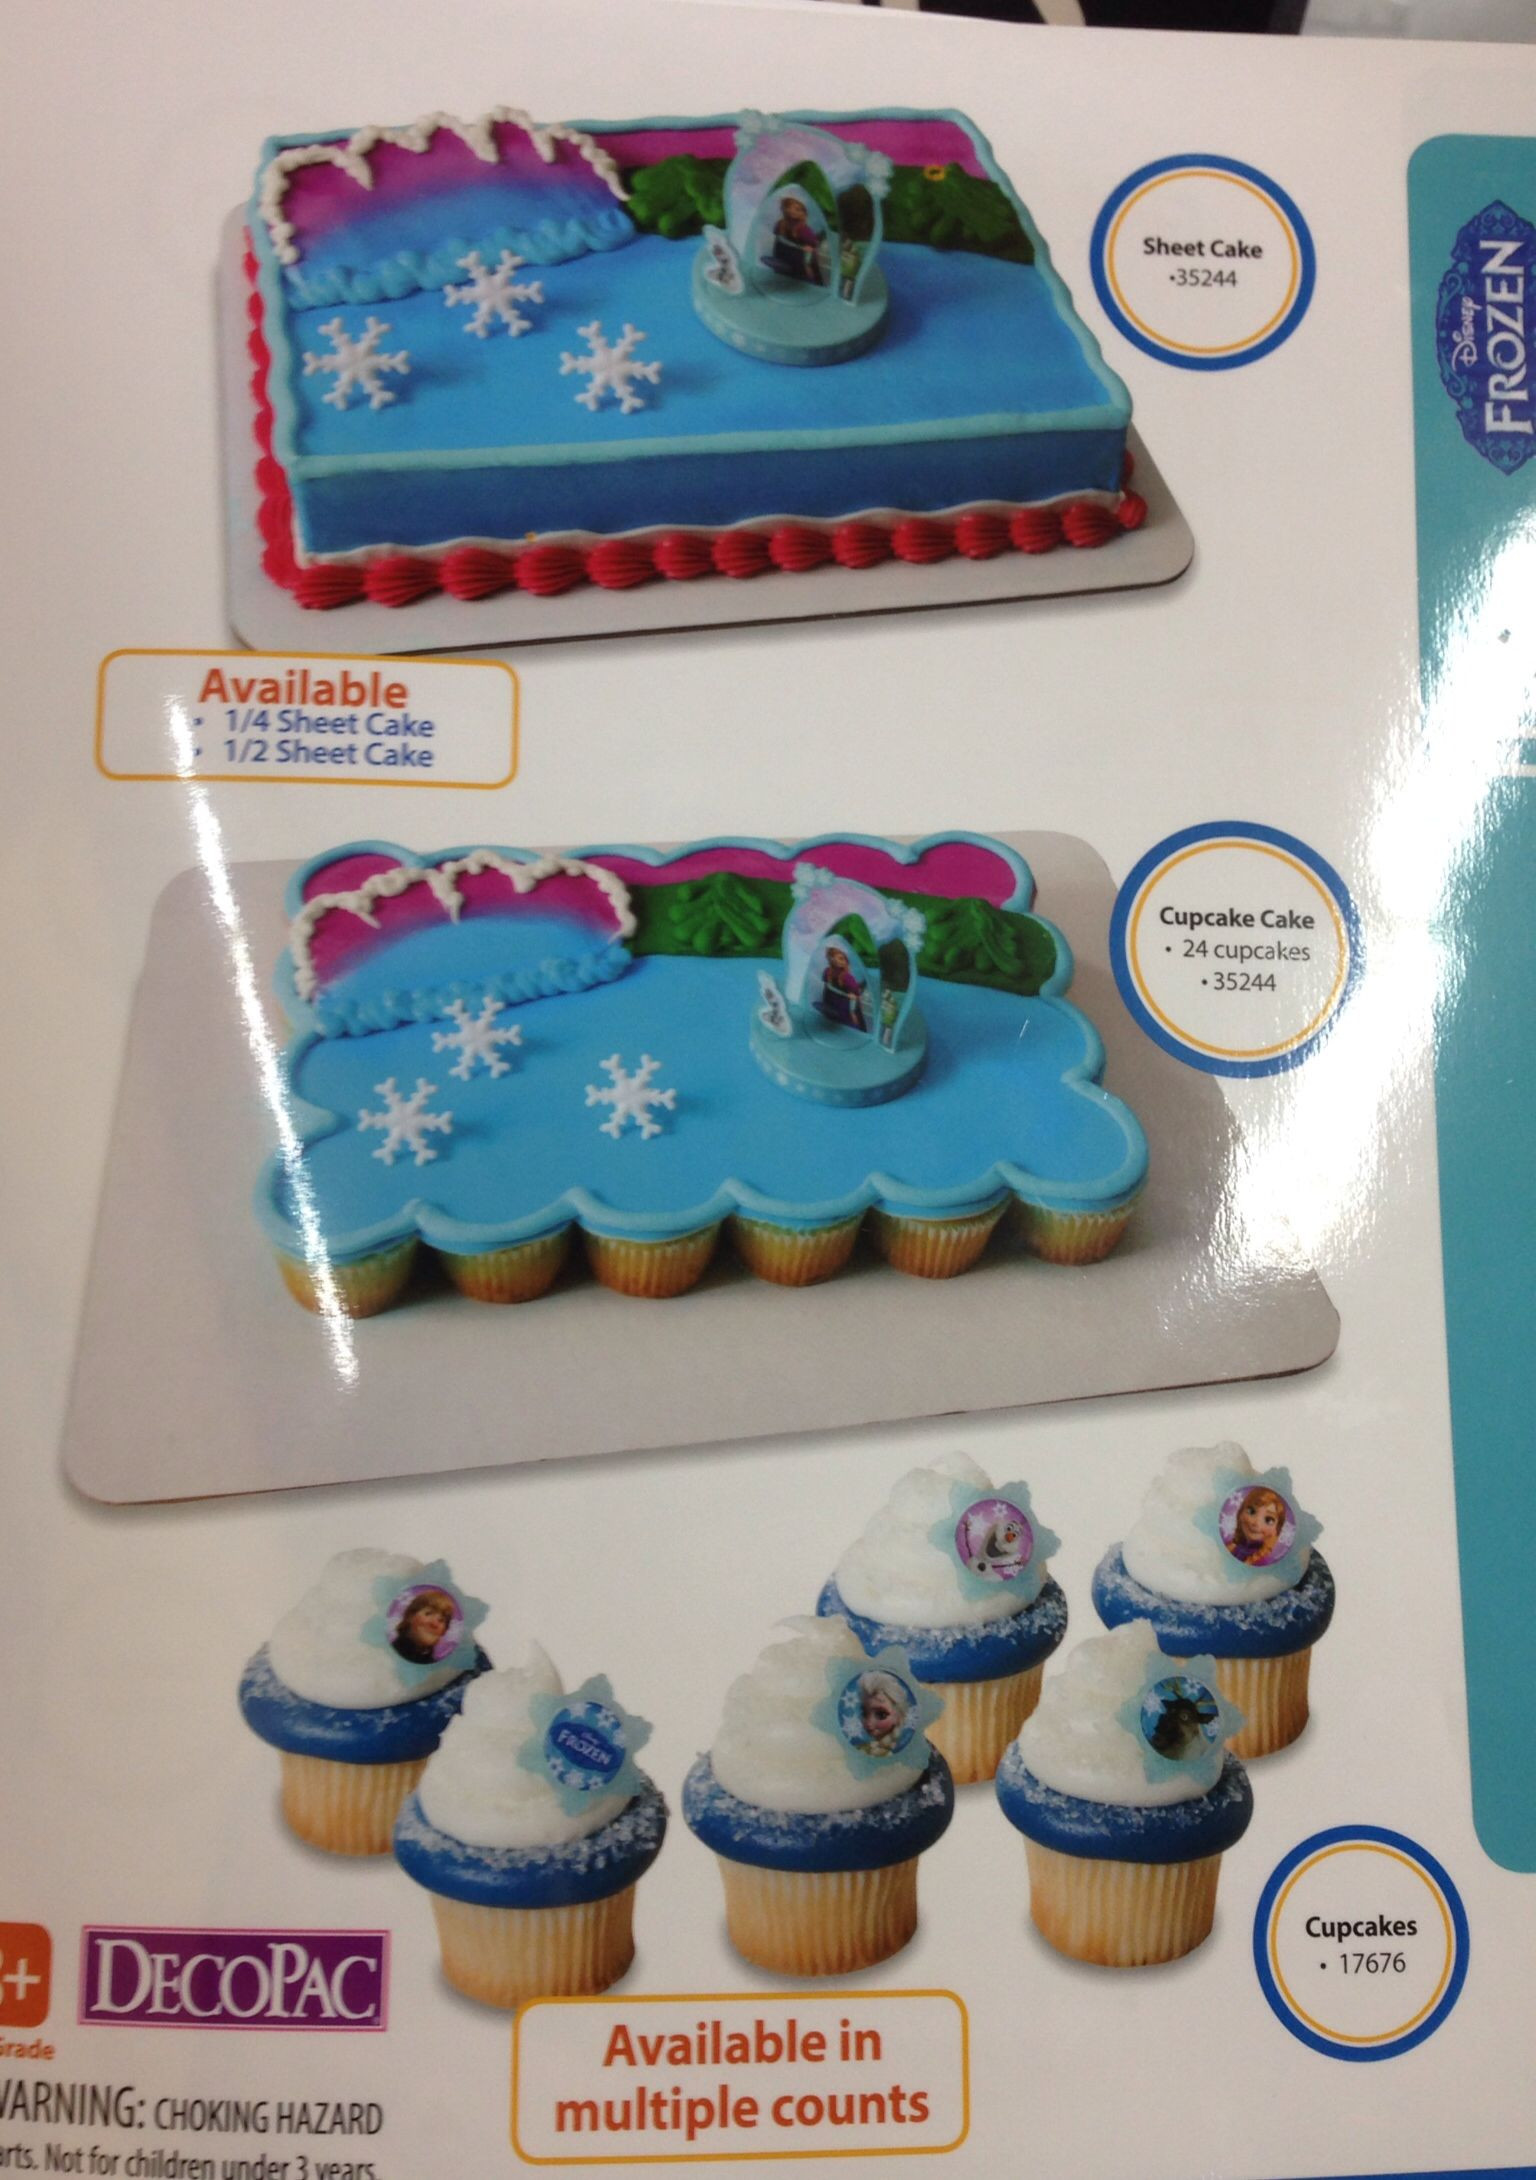 Best ideas about Frozen Birthday Cake Walmart . Save or Pin Frozen cake and cupcakes at Walmart Now.